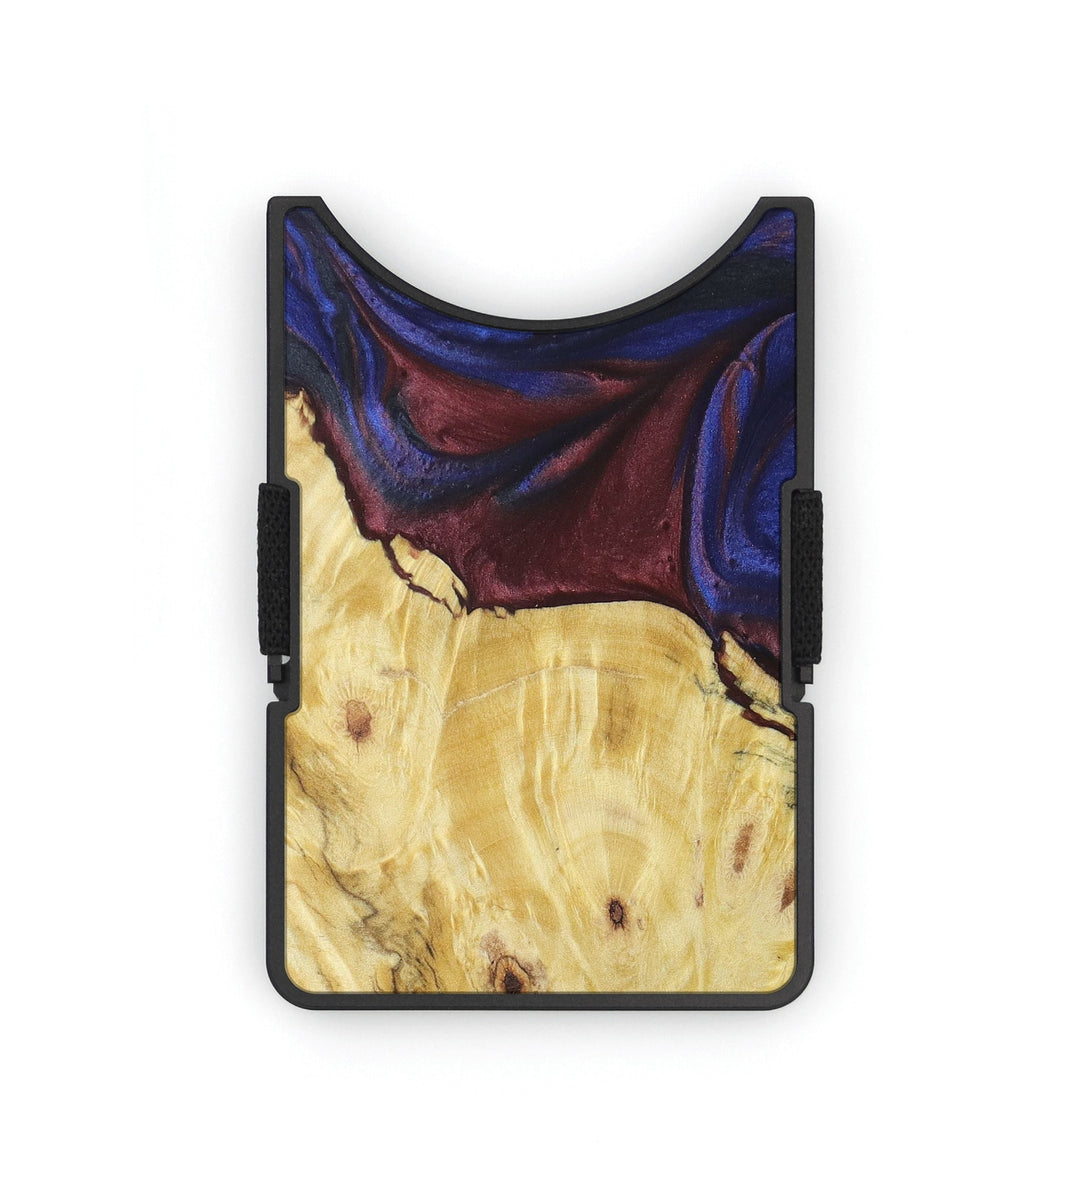 Alloy Wood+Resin Wallet - Dore (Blue & Red, 399437)